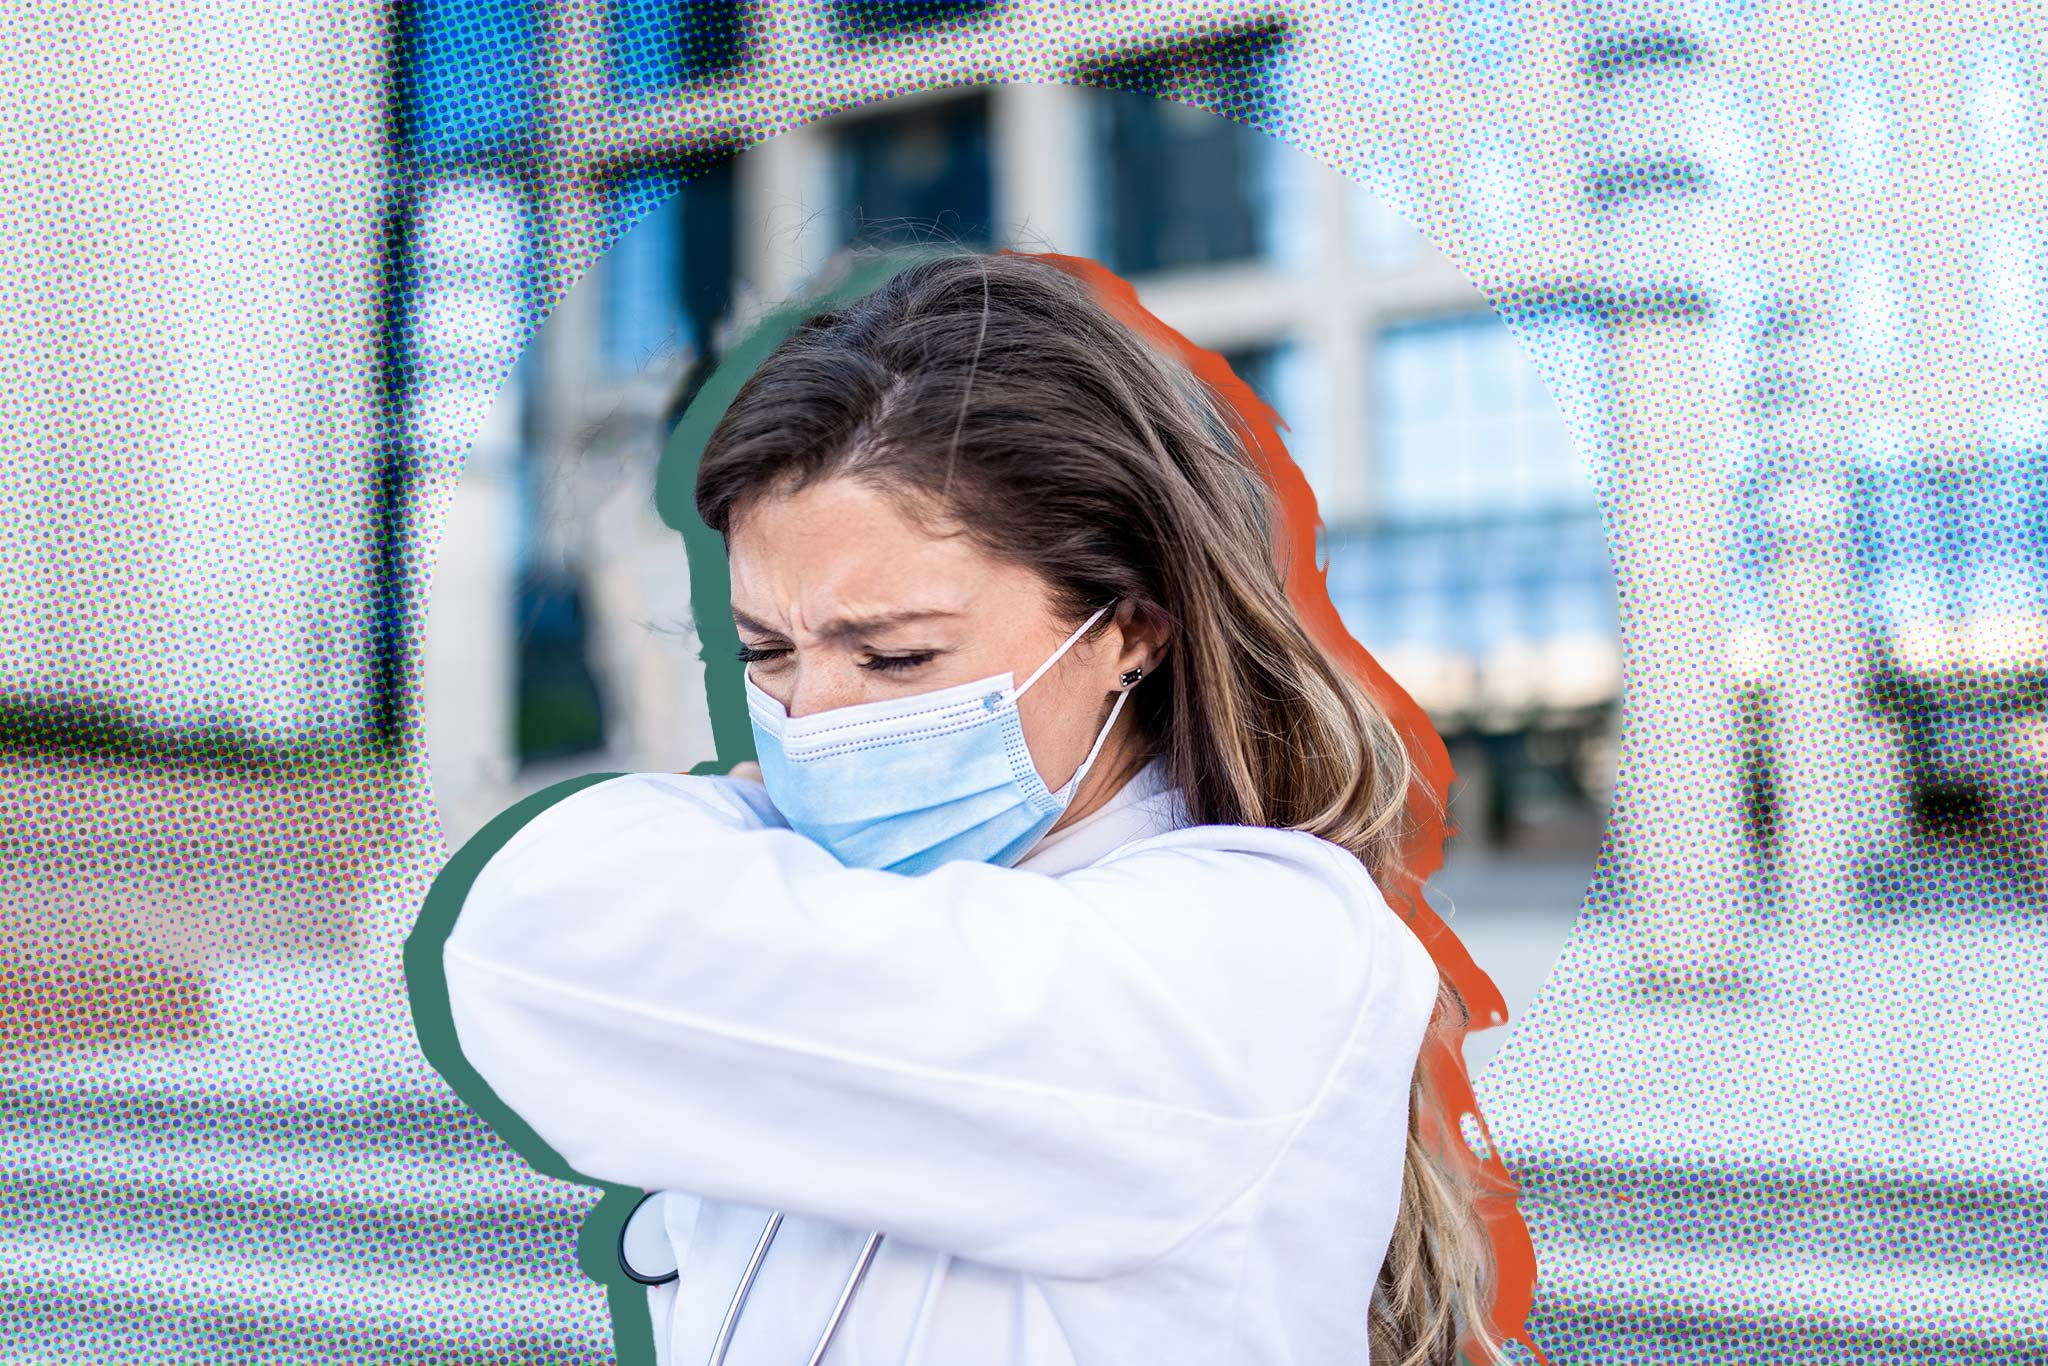 Image of a student outside wearing. mask and sneezing into their elbow